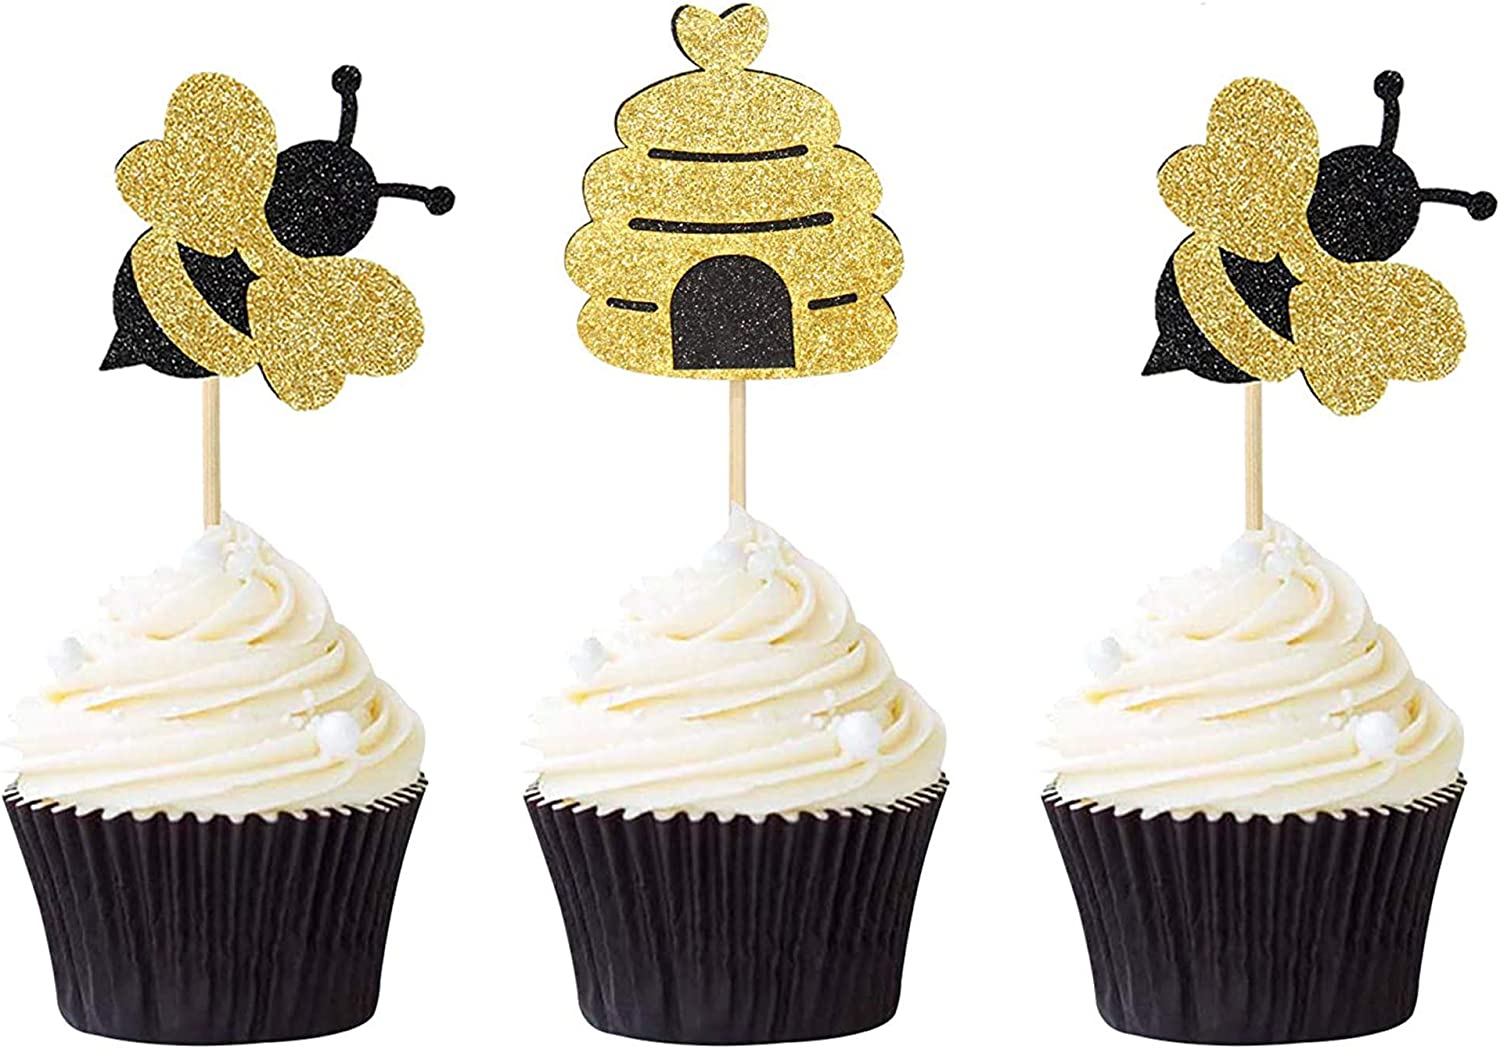 24PCS Glitter Bumble Bee Cake Toppers Honeycomb Cupcake Toppers For Baby Shower Birthday Gender Reveal Party Decor